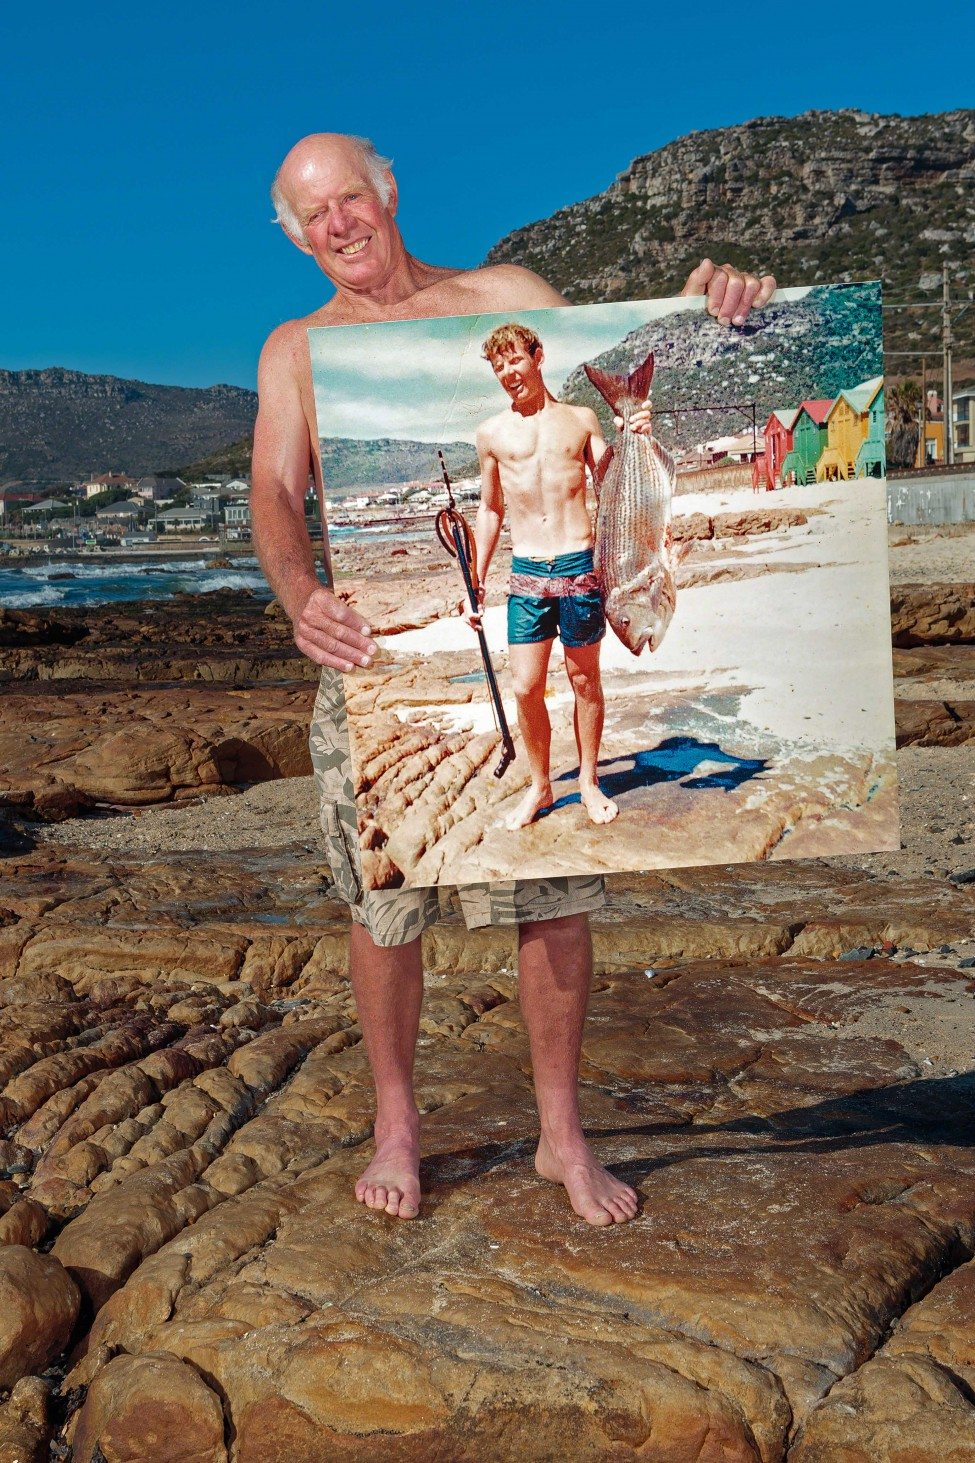 In December 1968, Geoff Fridjhon posed for a photo holding a large white musselcracker Sparodon durbanensis he had caught while spearfishing off Dalebrook beach. A fish of this size would have been close to 30 years old. Forty-six years later Fridgeon stands in the exact same spot holding an enlargement of the photo. Today the species has all but disappeared from False Bay. A white musselcracker can take more than five years to reach sexual maturity, which makes the species highly susceptible to overfishing.